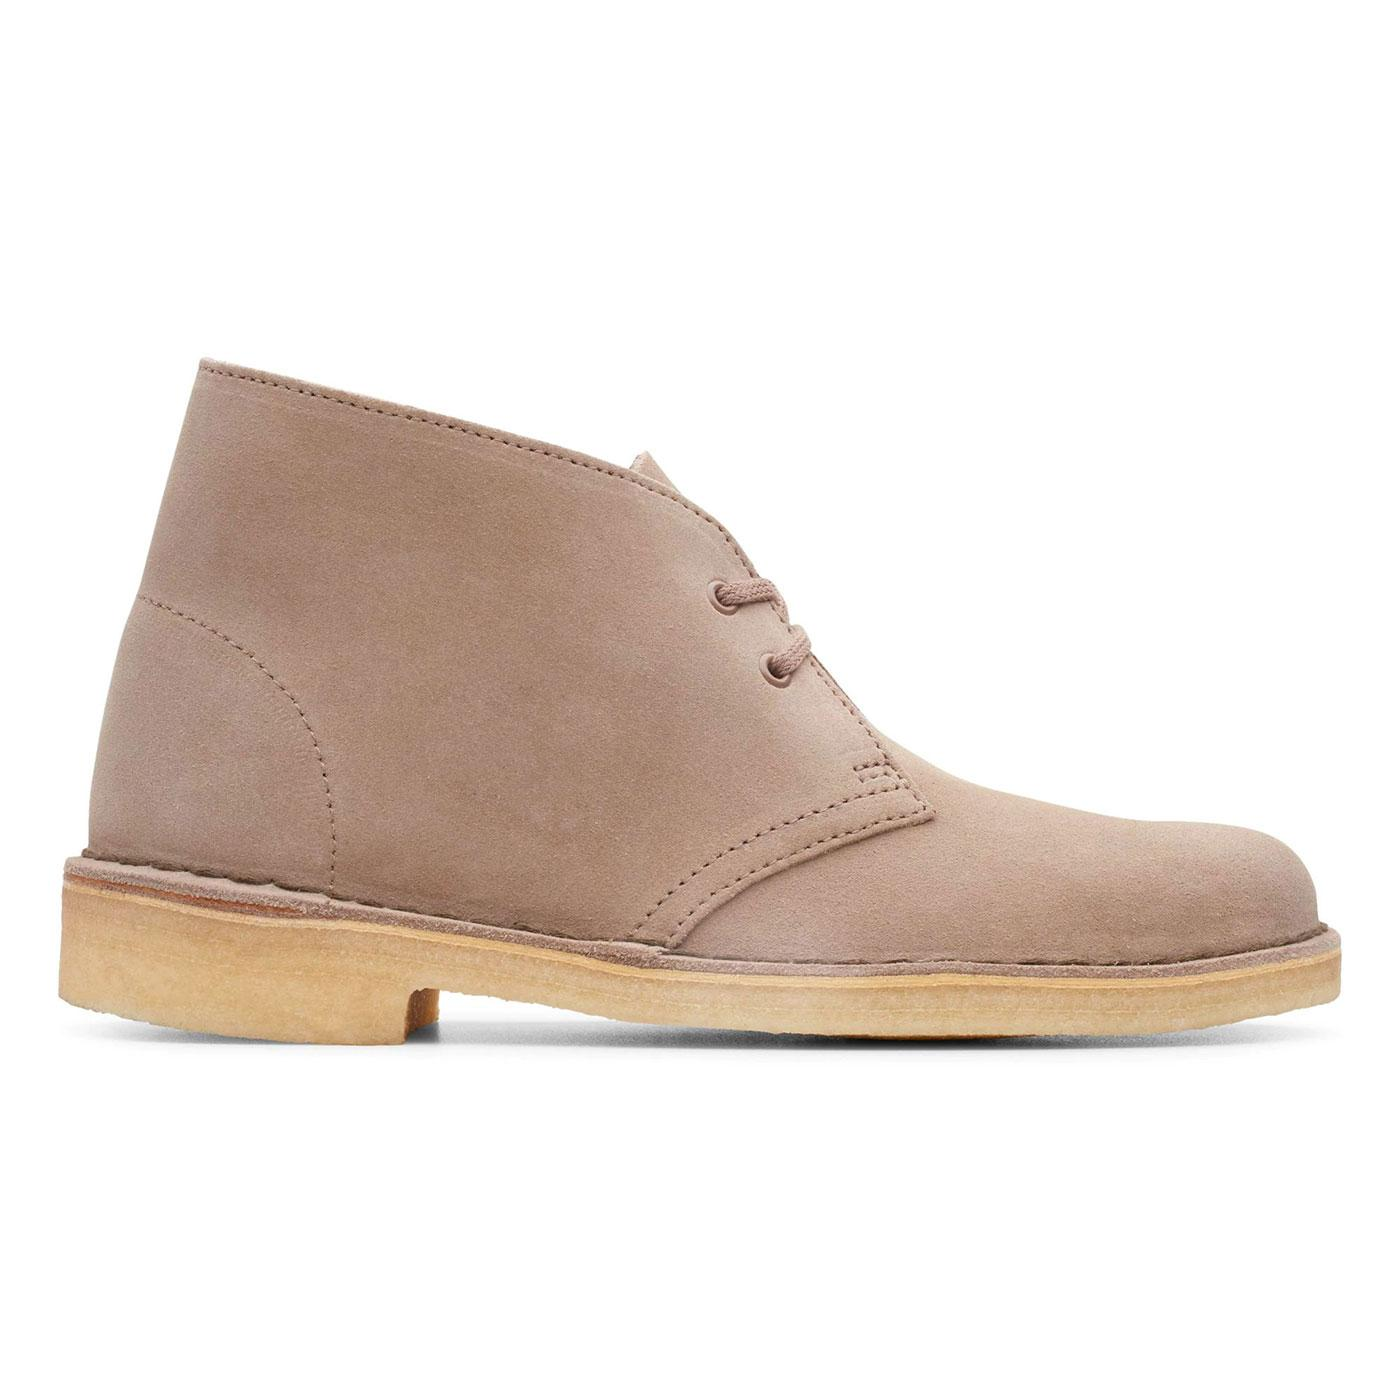 CLARKS ORIGINALS Women's Desert Boots in Mushroom